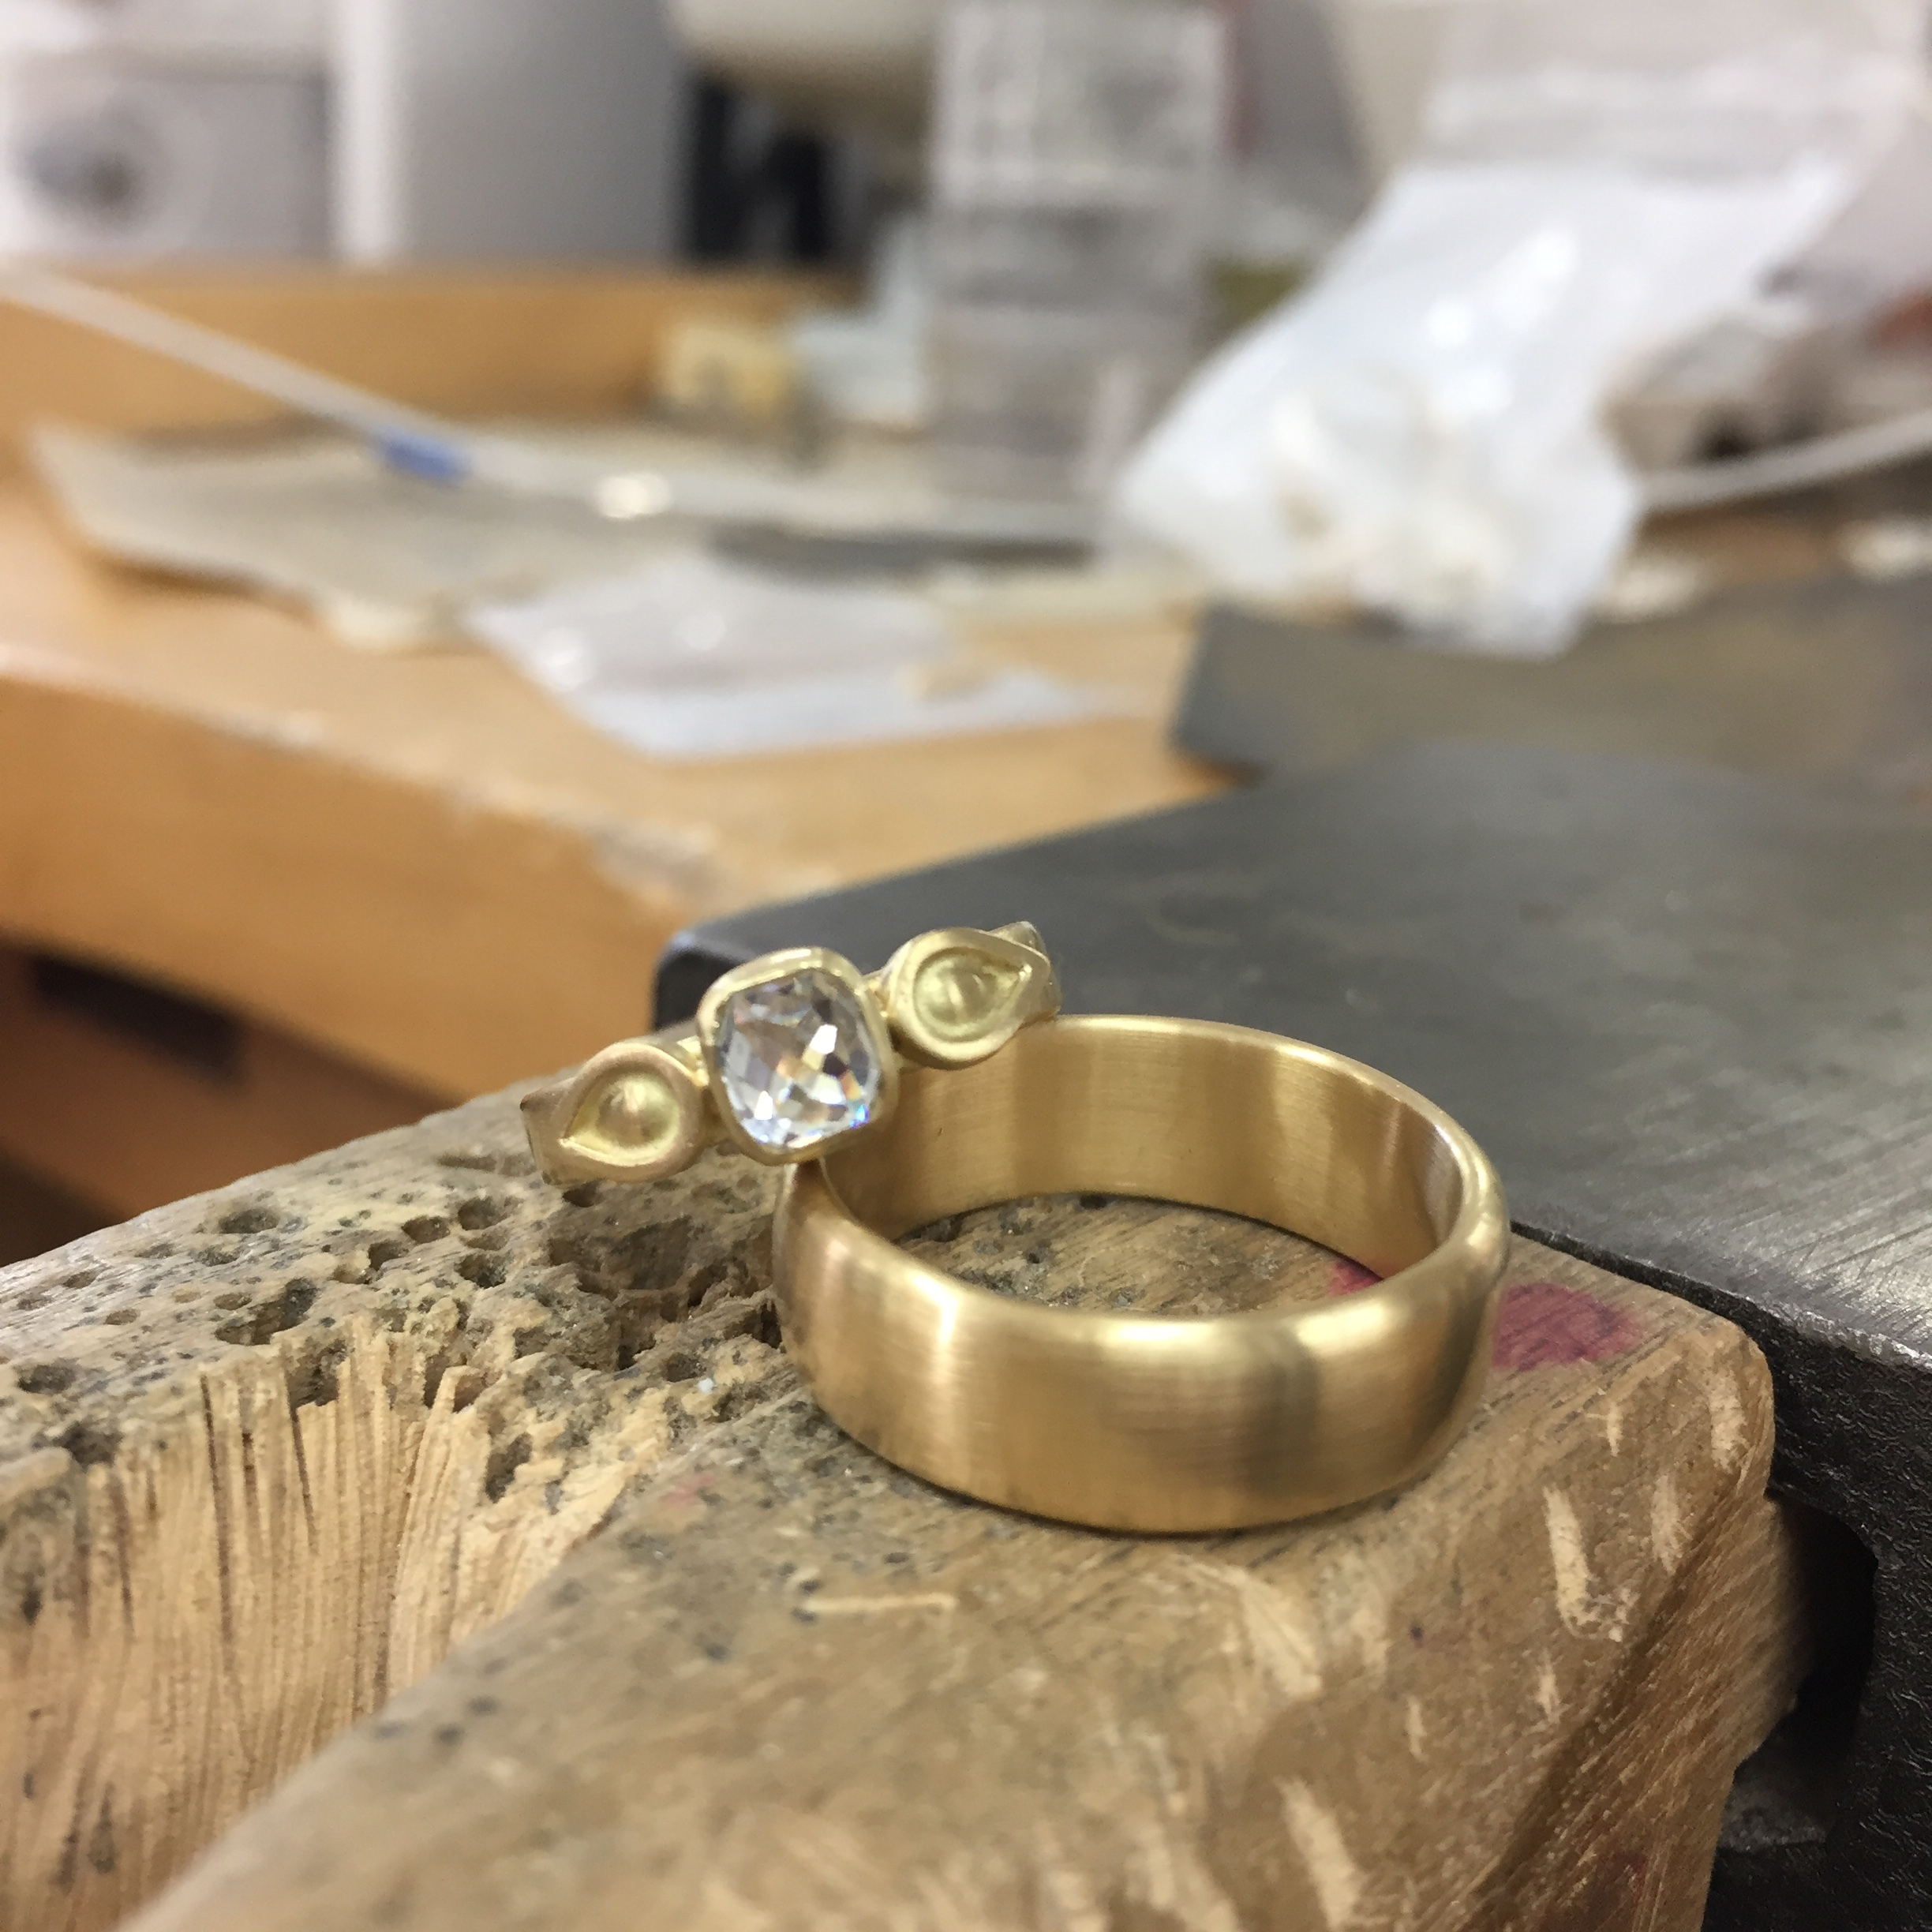 A new set of wedding rings for my wonderful clients! All 18k yellow gold, and handmade with love. (Not pictured: the super secret romantic engraved message to each other on the inside of these bands)